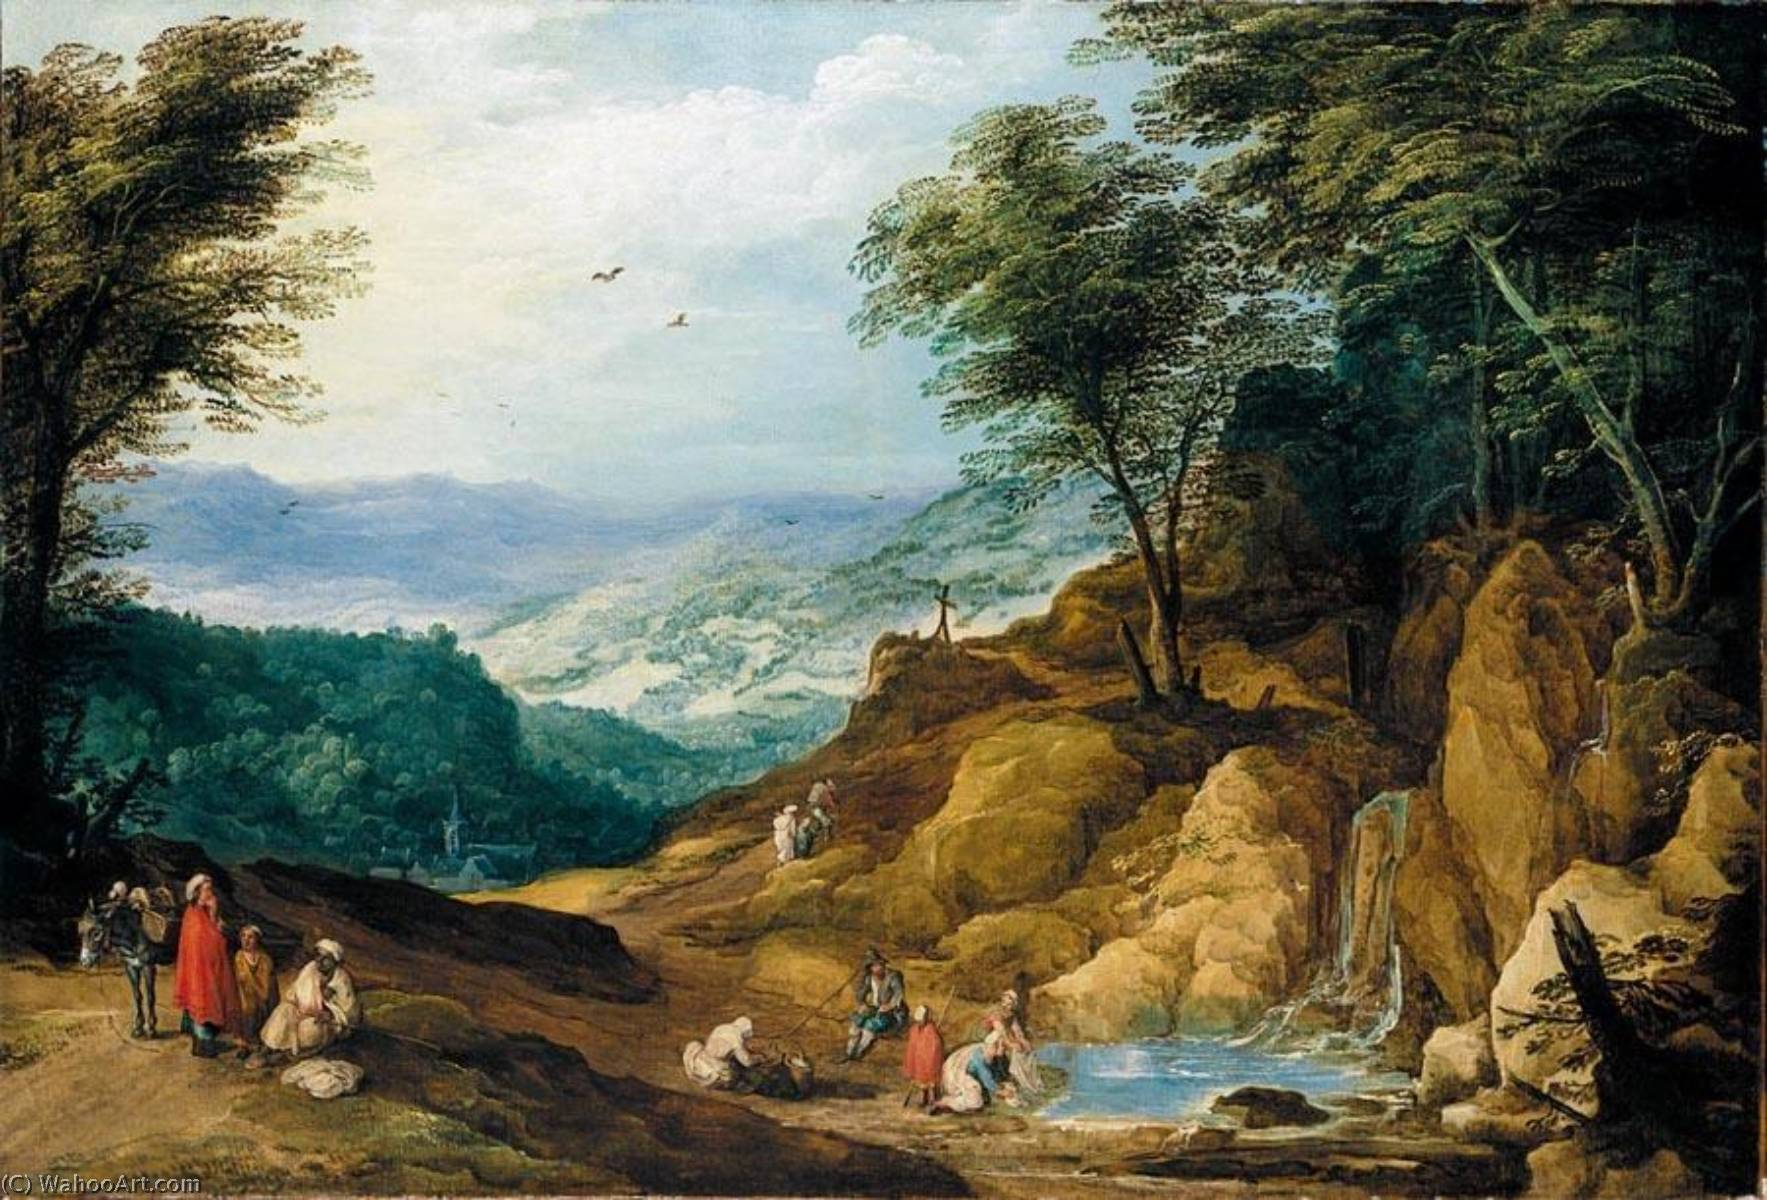 An Extensive Mountainous Landscape with Figures, 1620 by Joos De Momper The Younger (1564-1635) | Oil Painting | WahooArt.com